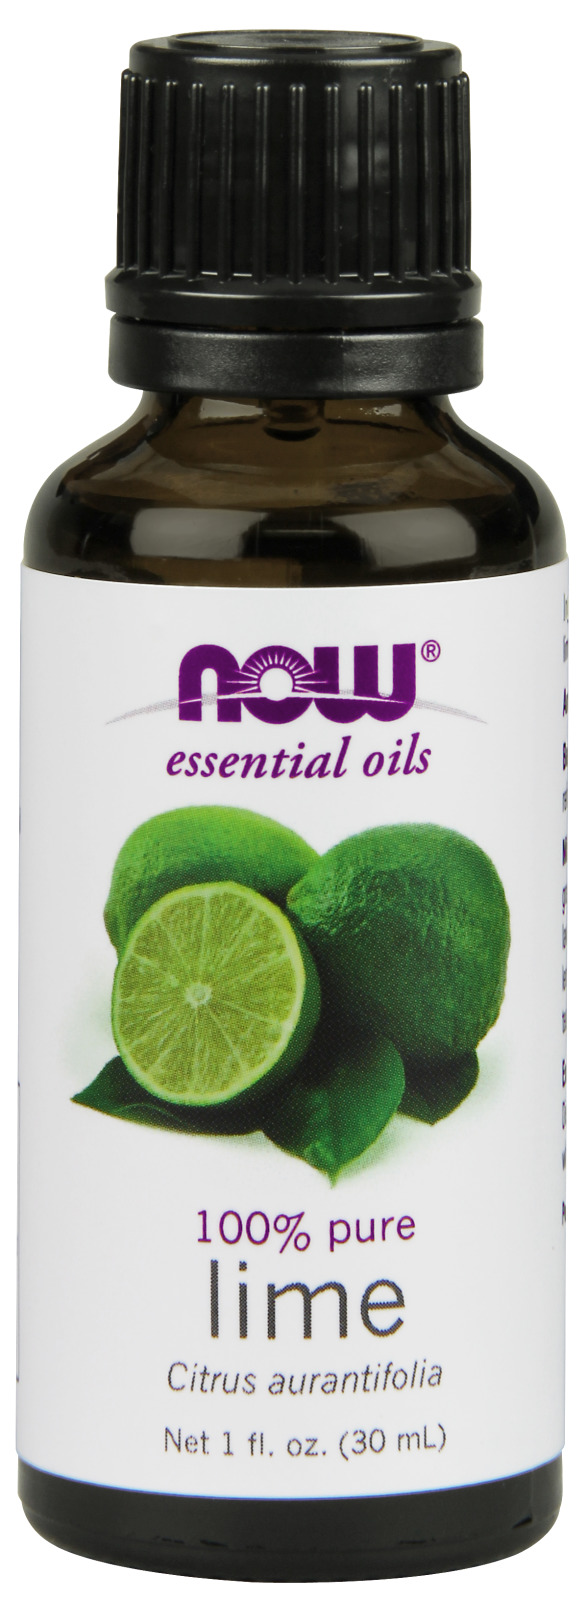 Lime Oil 1 fl oz (30 ml) by NOW